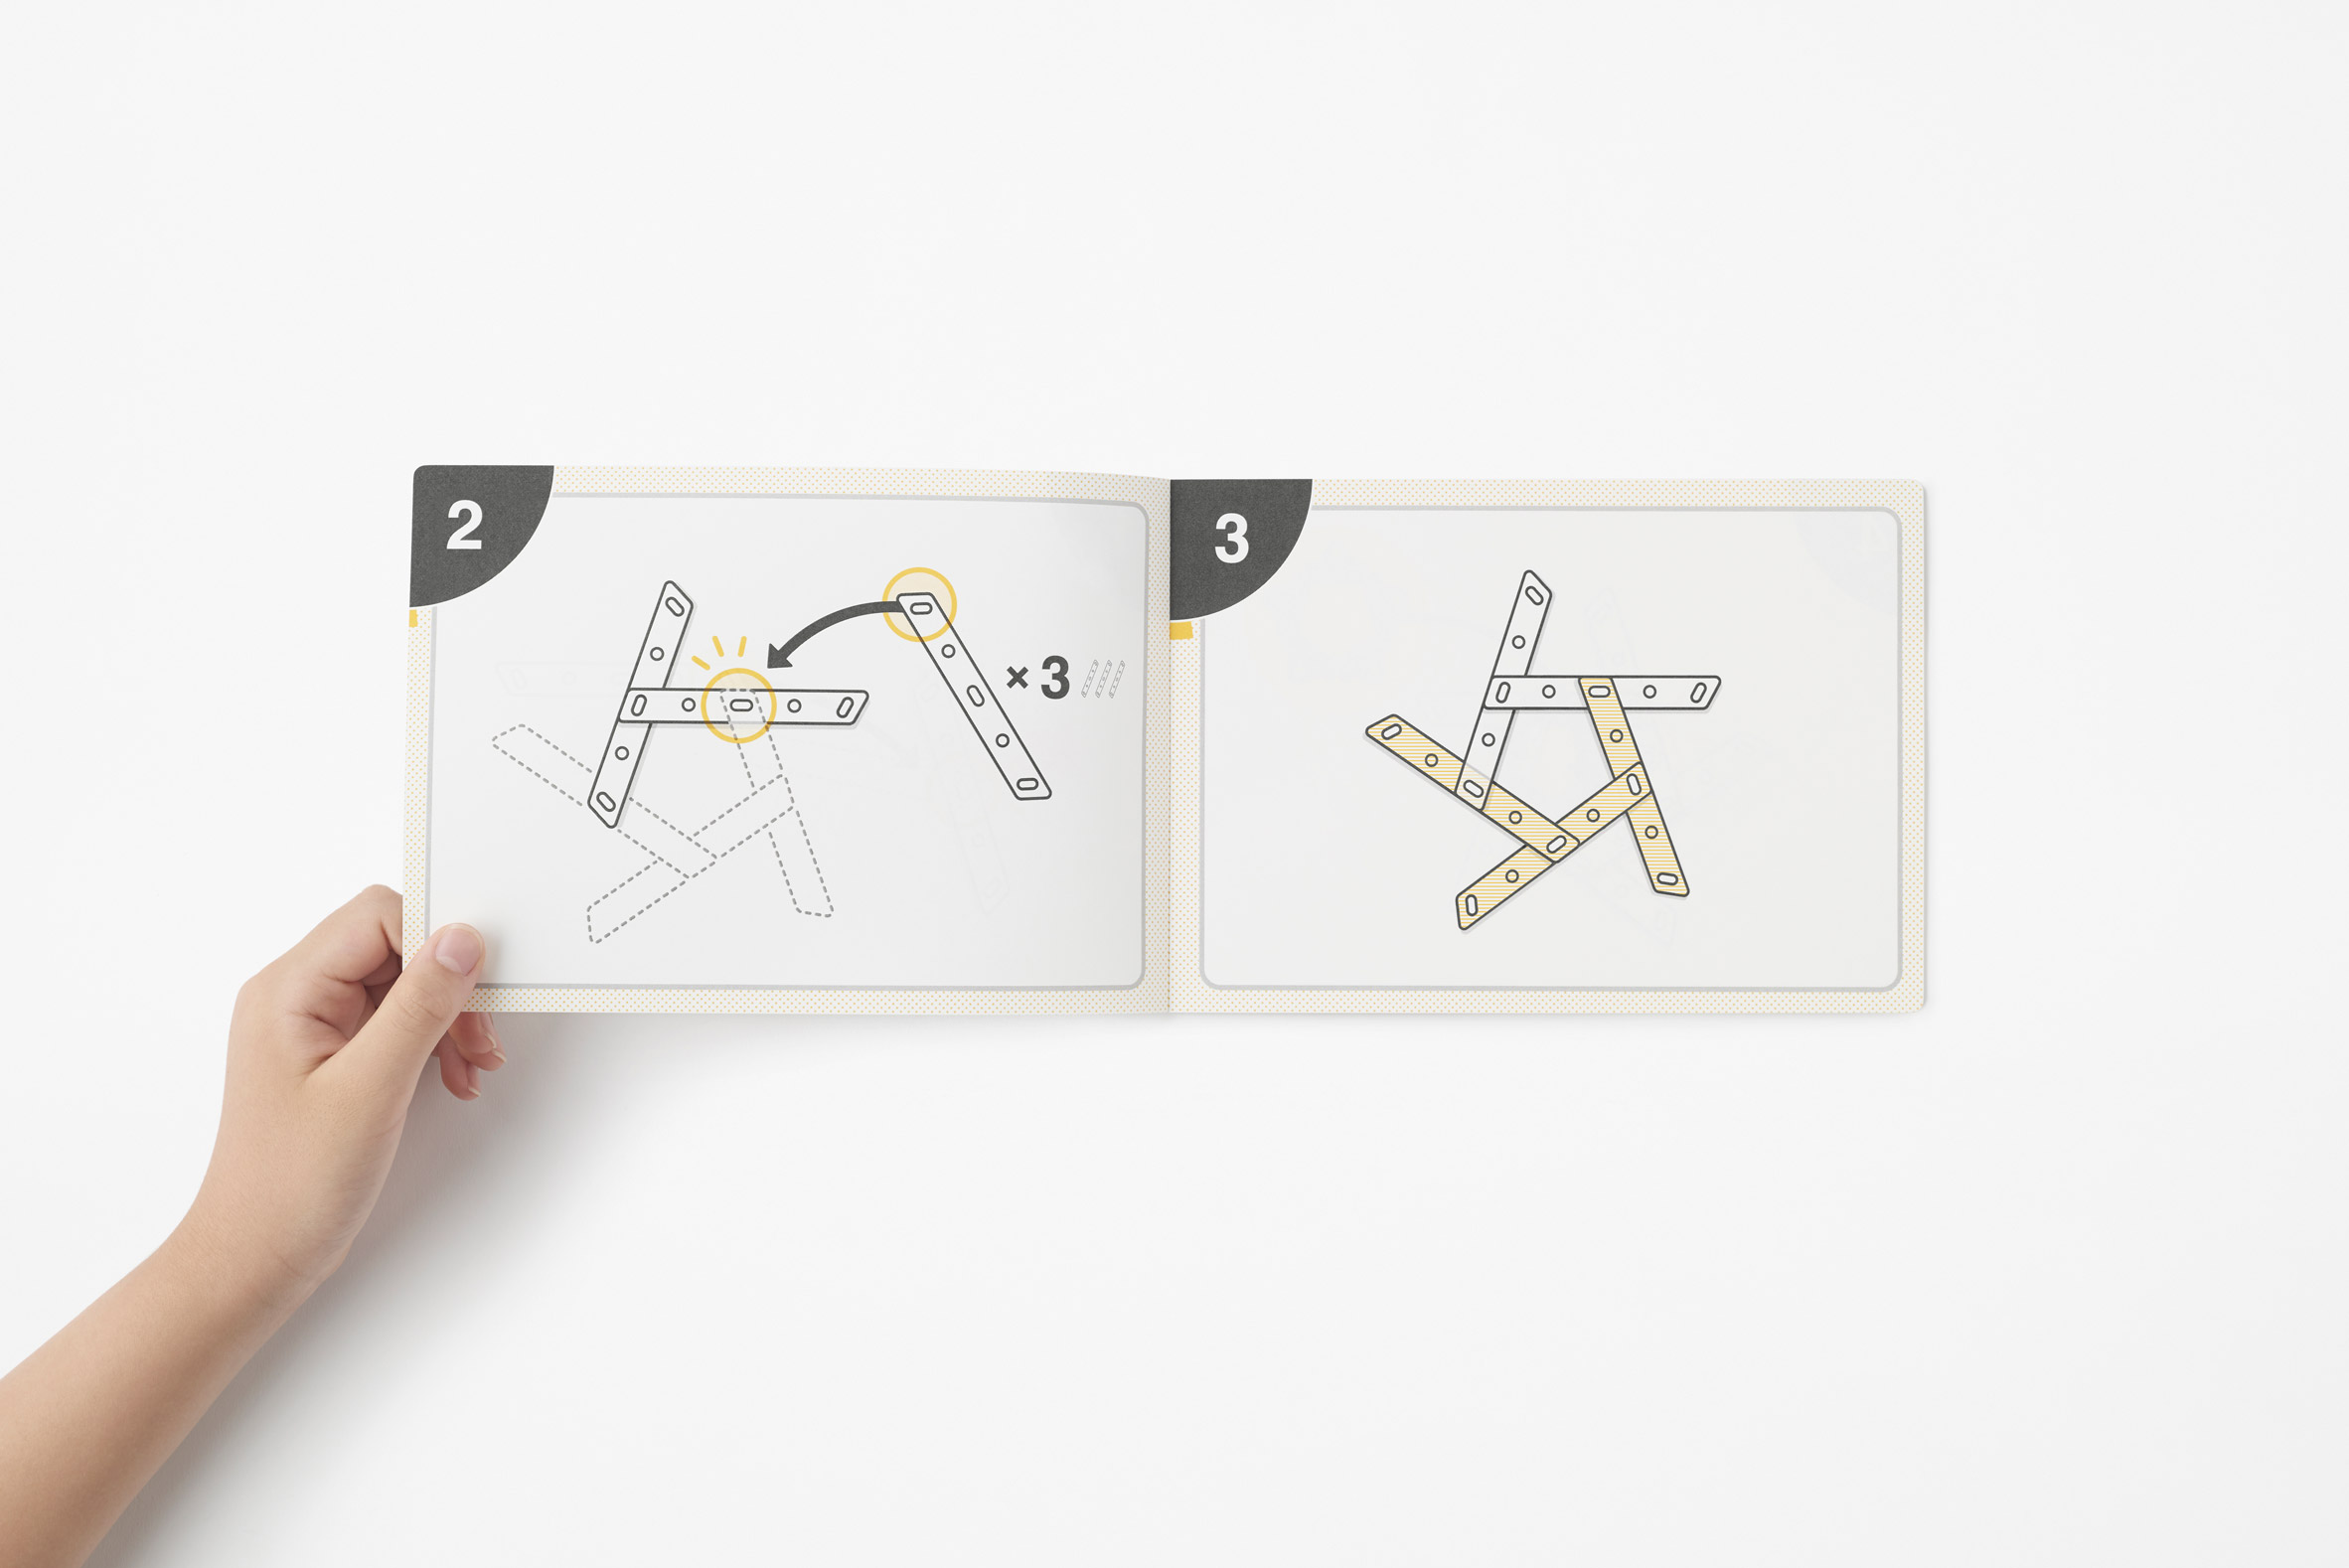 Instructions for the My Football Kit by Nendo for Molten